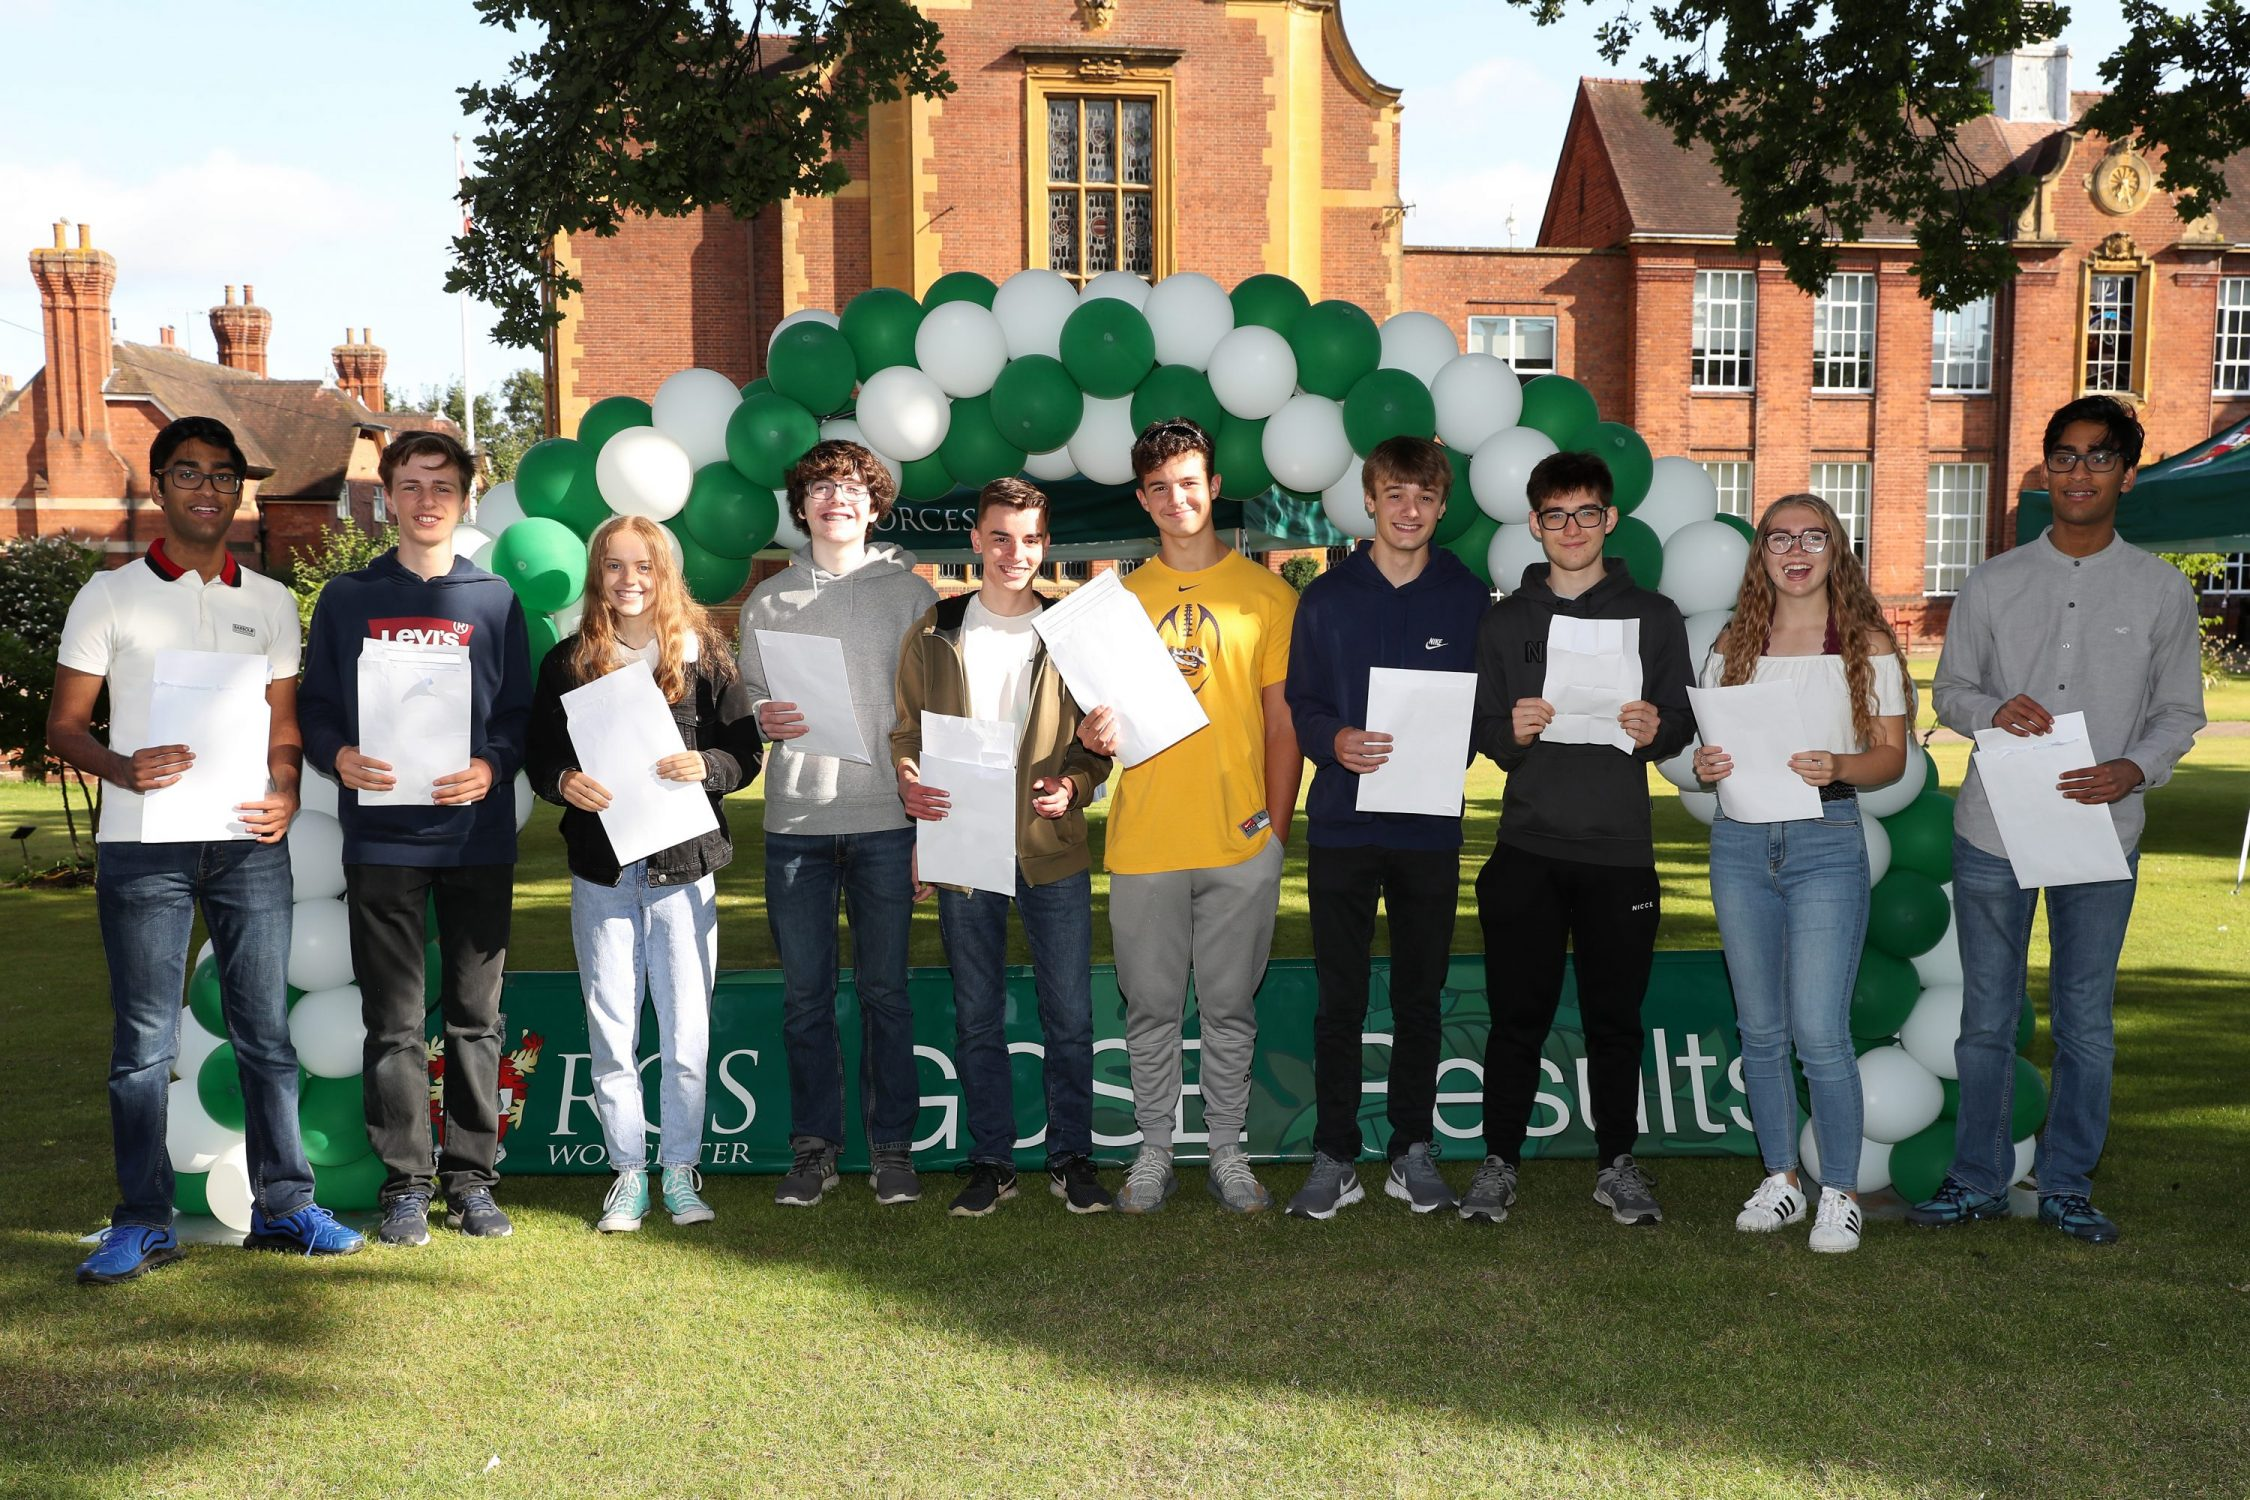 RGS WORCESTER GCSE RESULTS